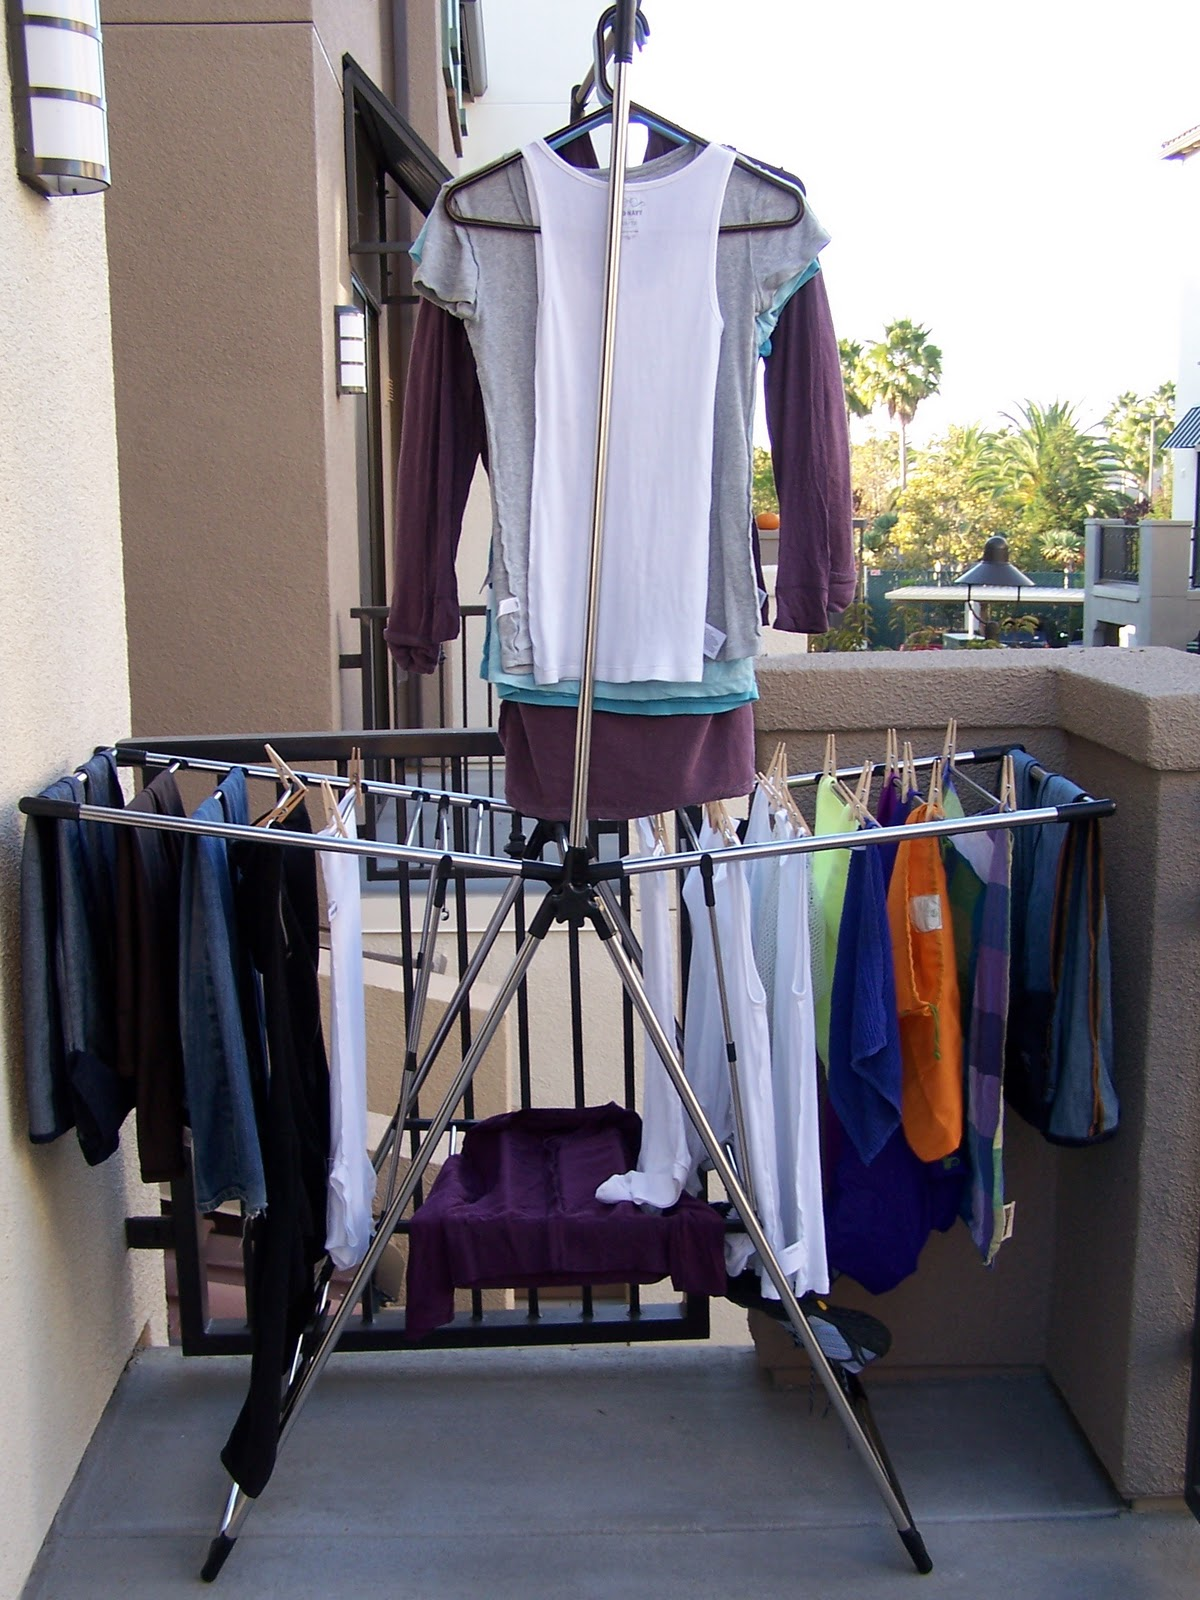 hanger clothes shop en fashion rail clothing wardrobe images room stylish furniture wear free hanging store shirts garment retail boutique style rack suits textile lifestyle photo